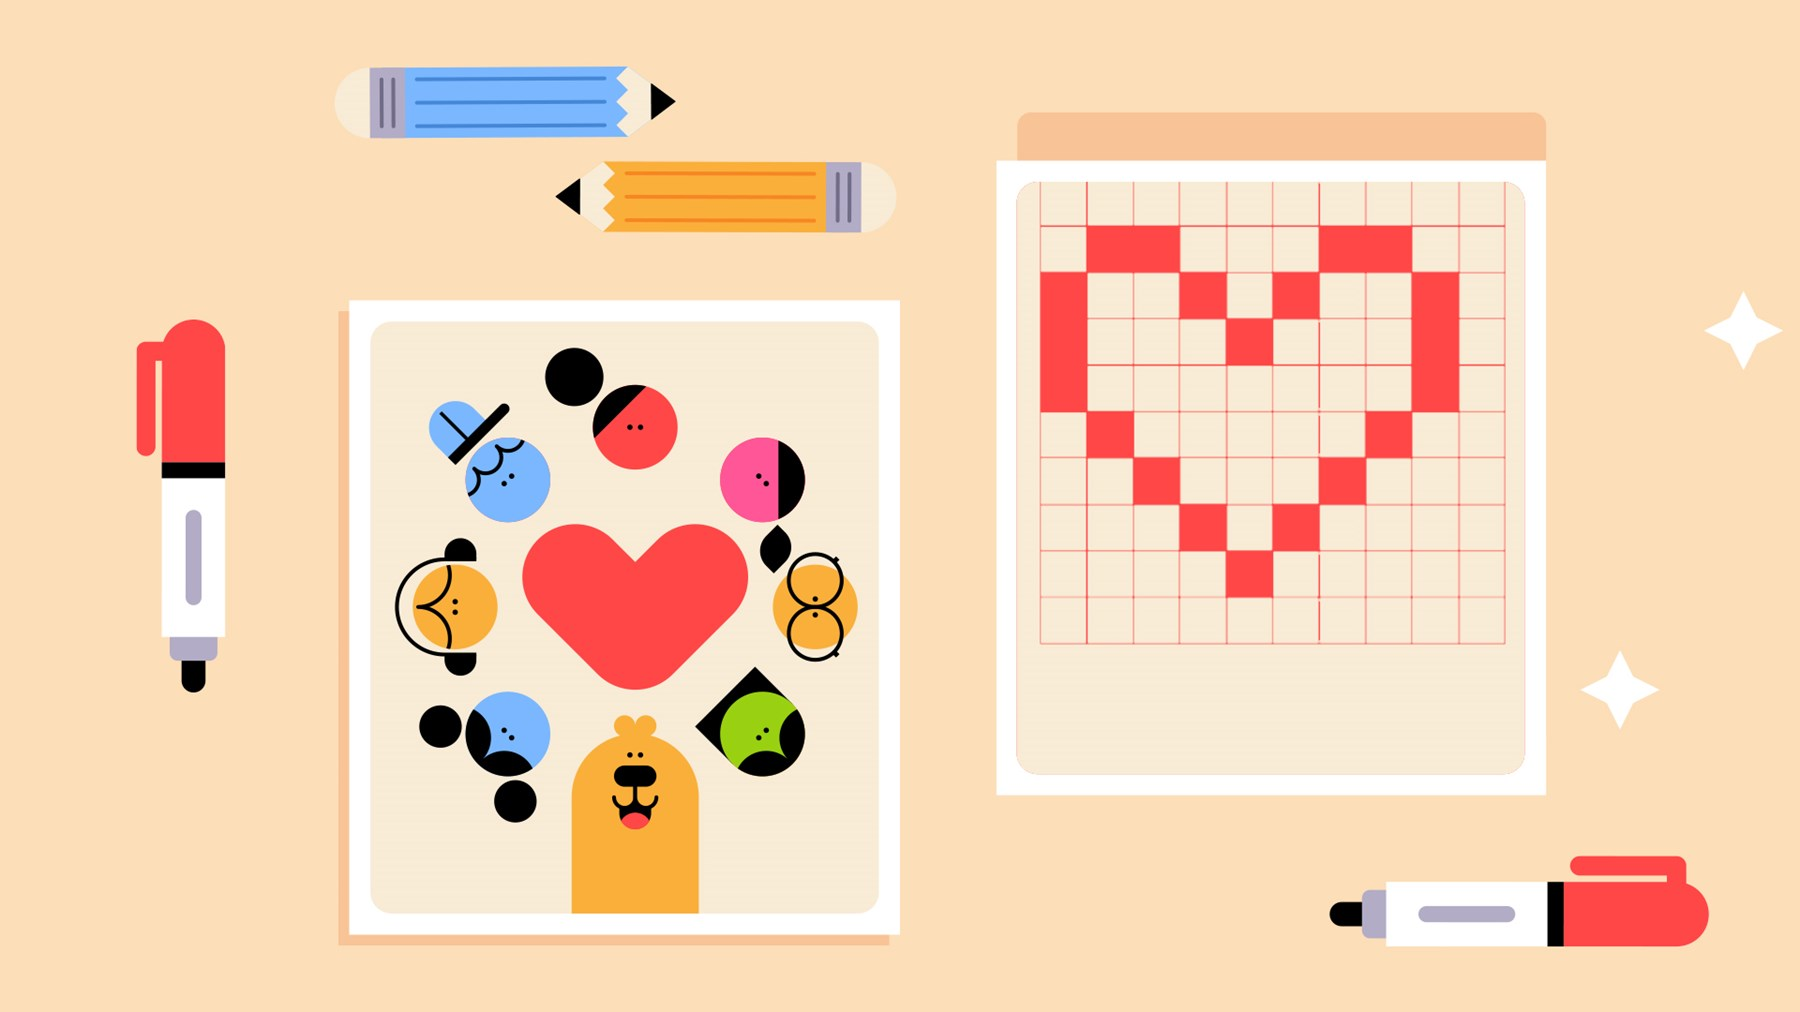 Two pictures; the first is an illustration of a group of Scouts and Buddy the dog surrounding a heart, and the other is a heart created from red-filled squares on a grid.